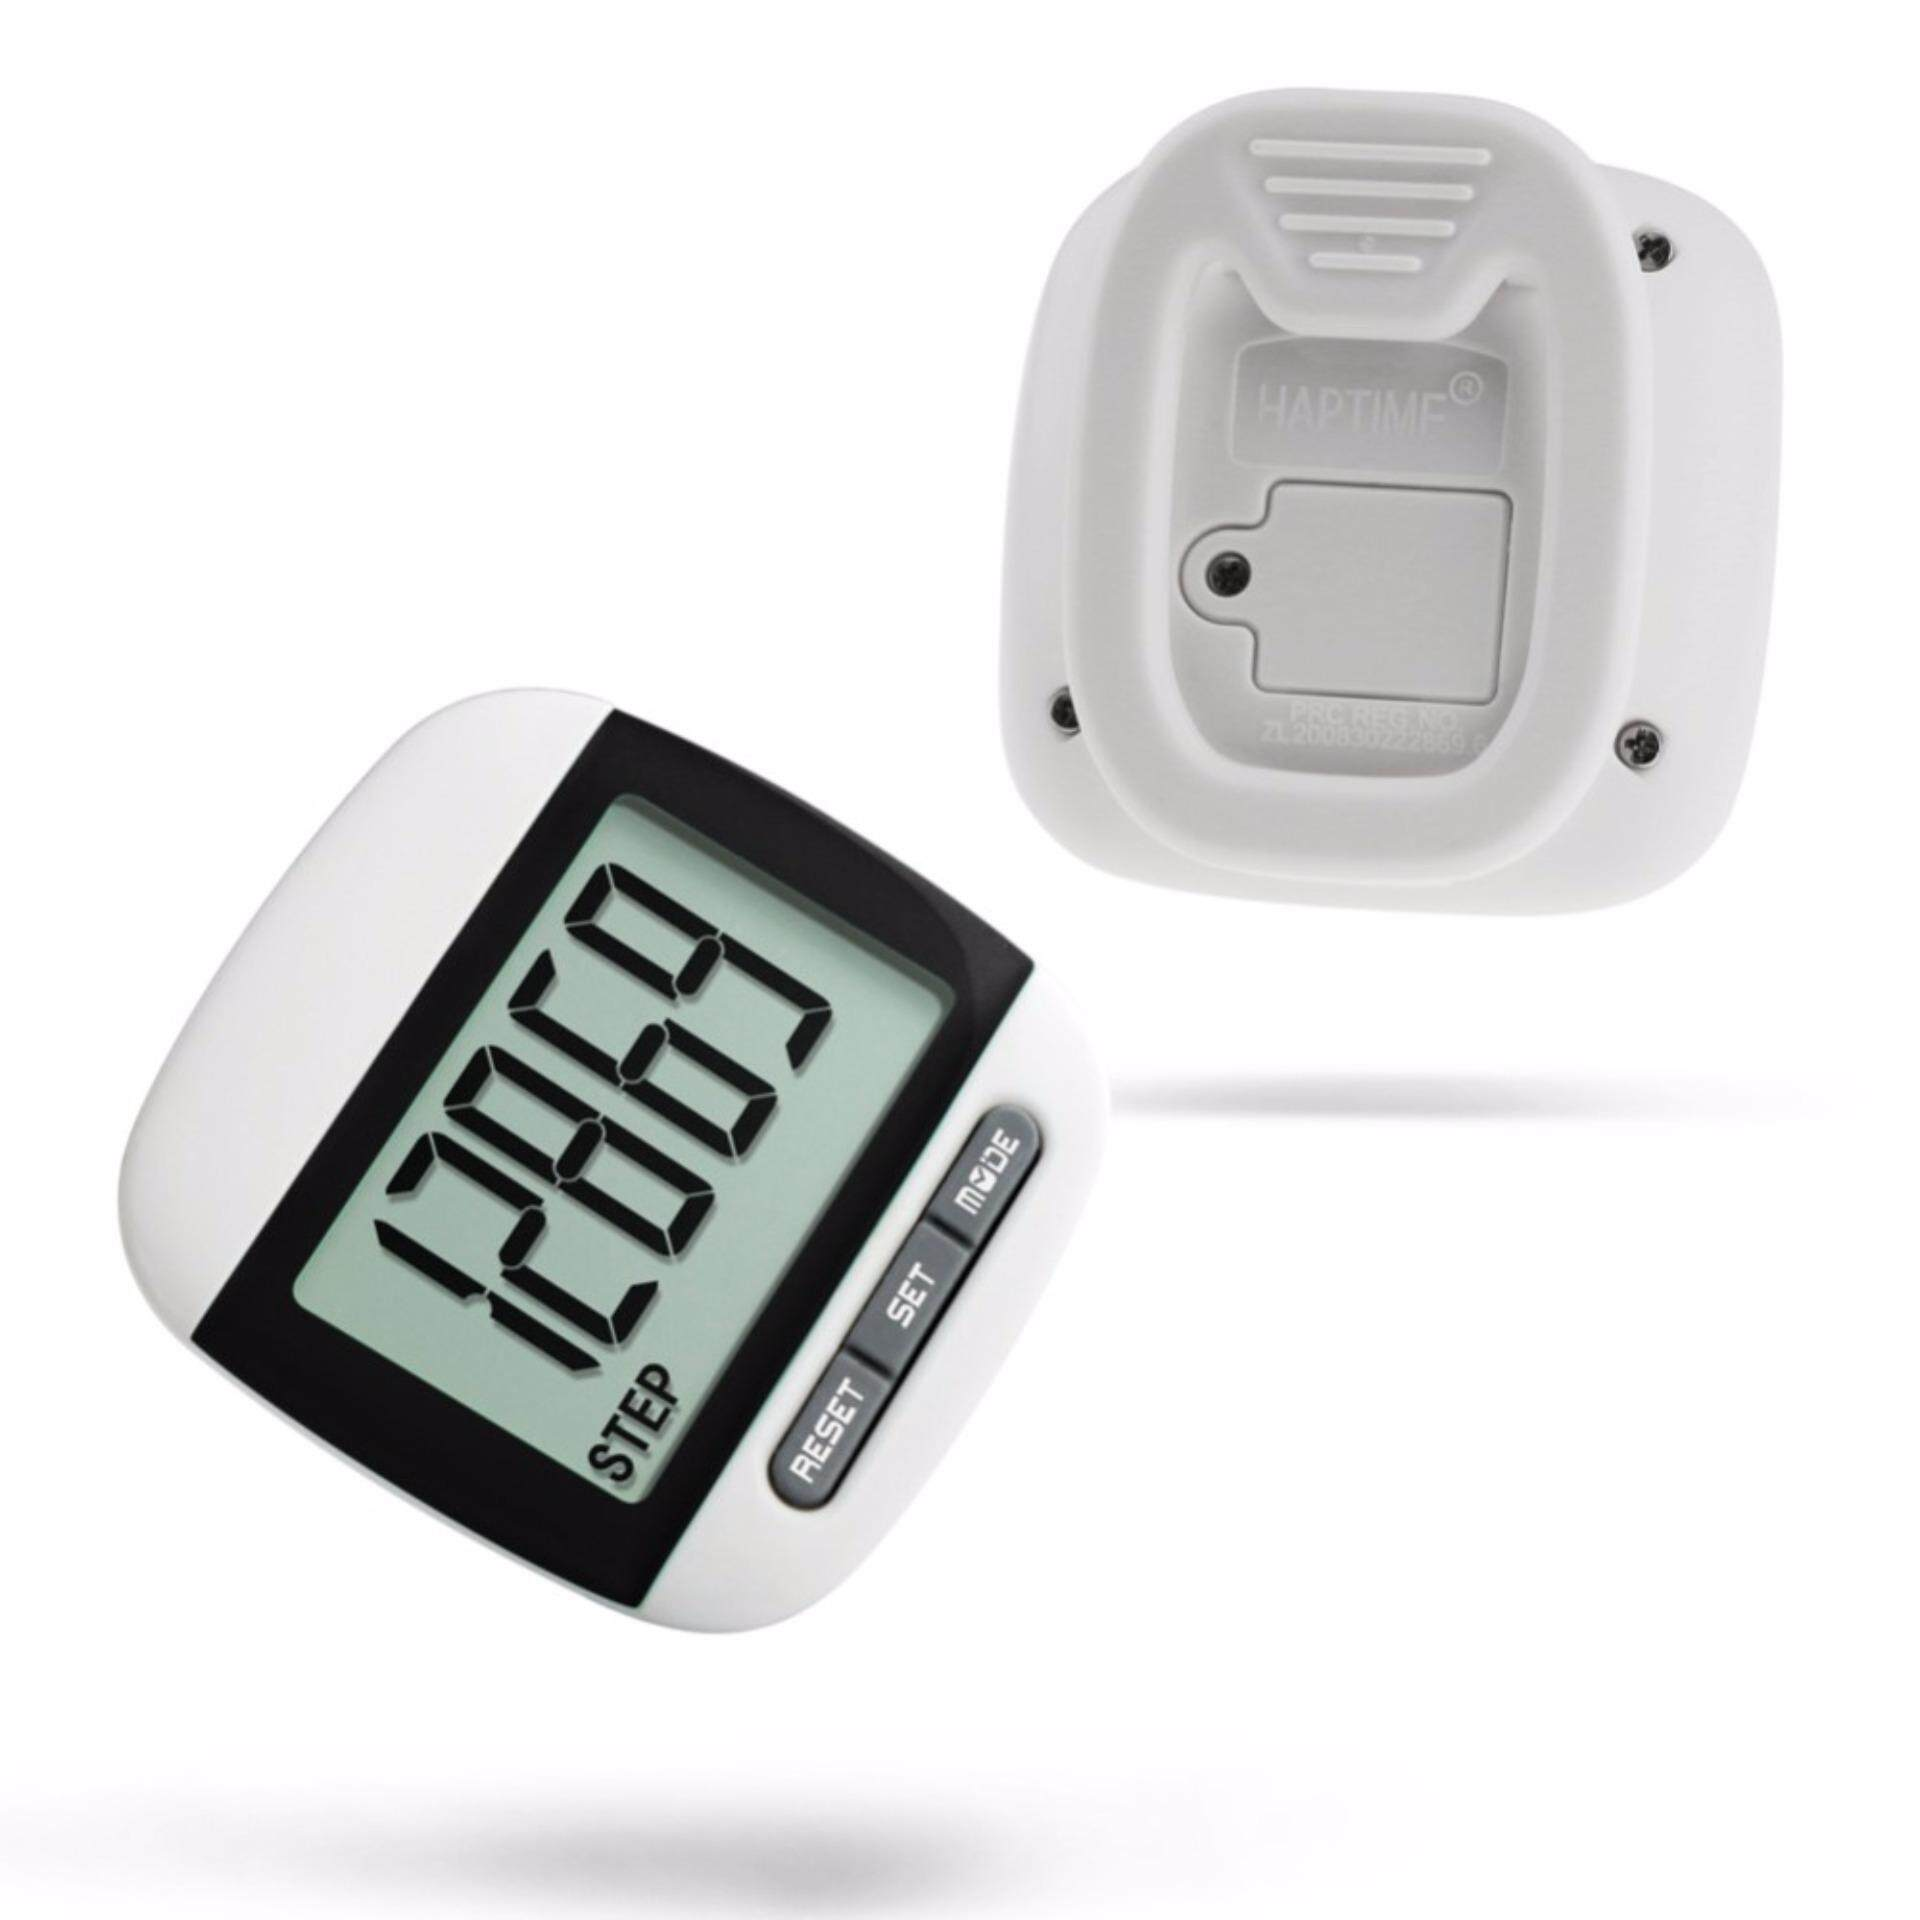 [READY STOCK] 7 in 1 Waterproof Portable Step Movement Calories Counter Multi-Function Digital Pedometer Distance Run Monitor Ultra-light - Black